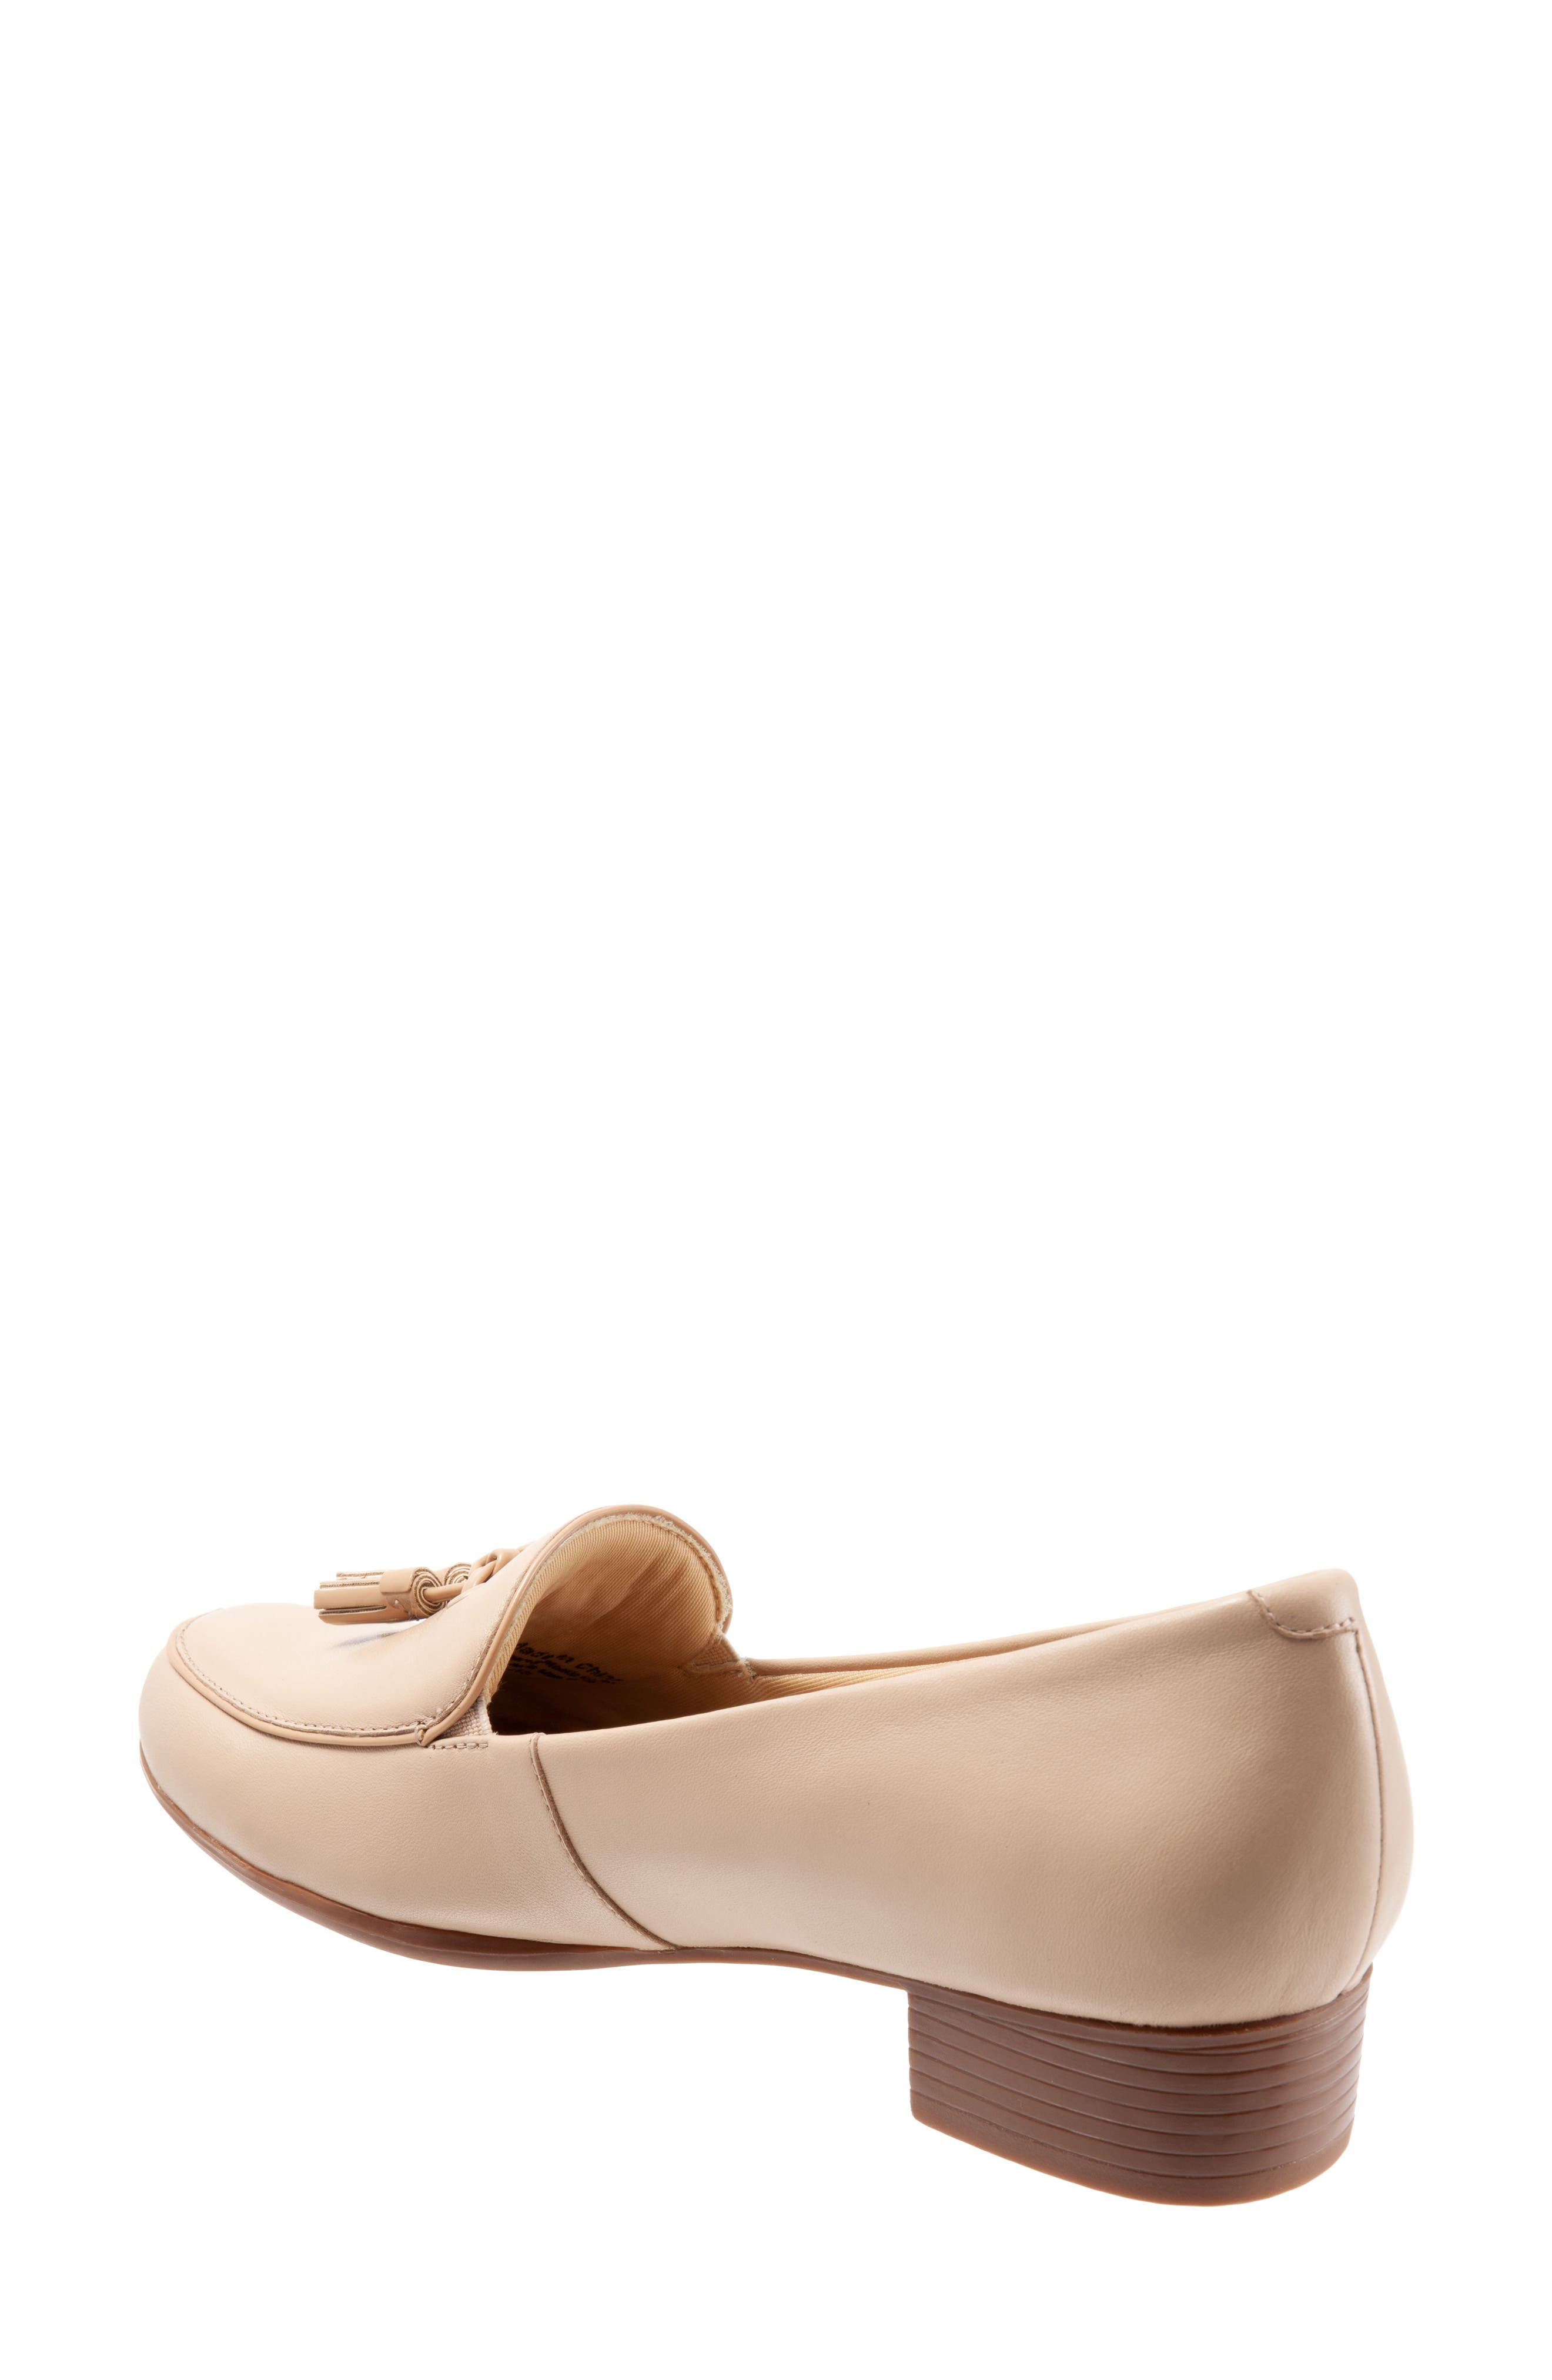 TROTTERS, Mary Tassel Loafer, Alternate thumbnail 2, color, NUDE LEATHER